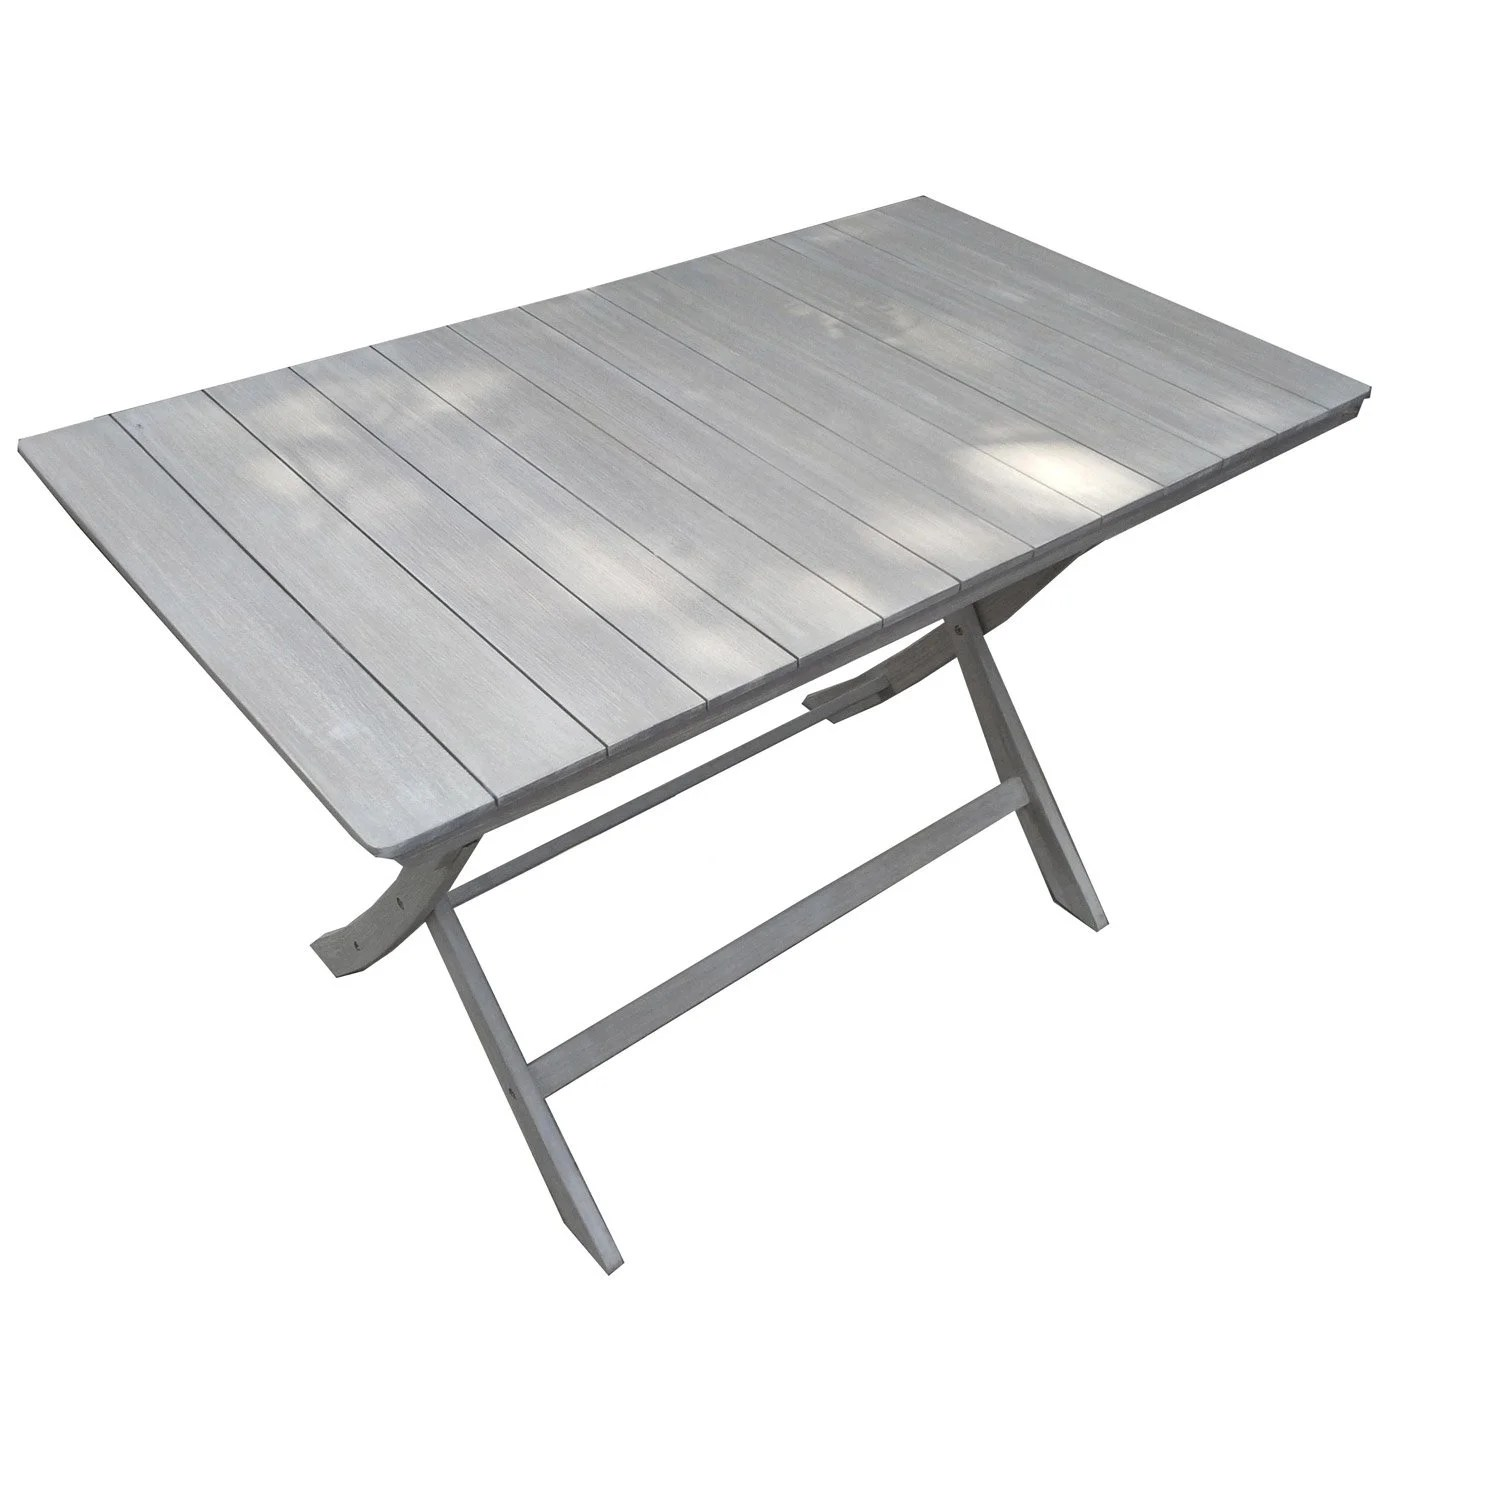 Table Exterieur Castorama Table De Jardin Naterial Portofino Rectangulaire Gris 4